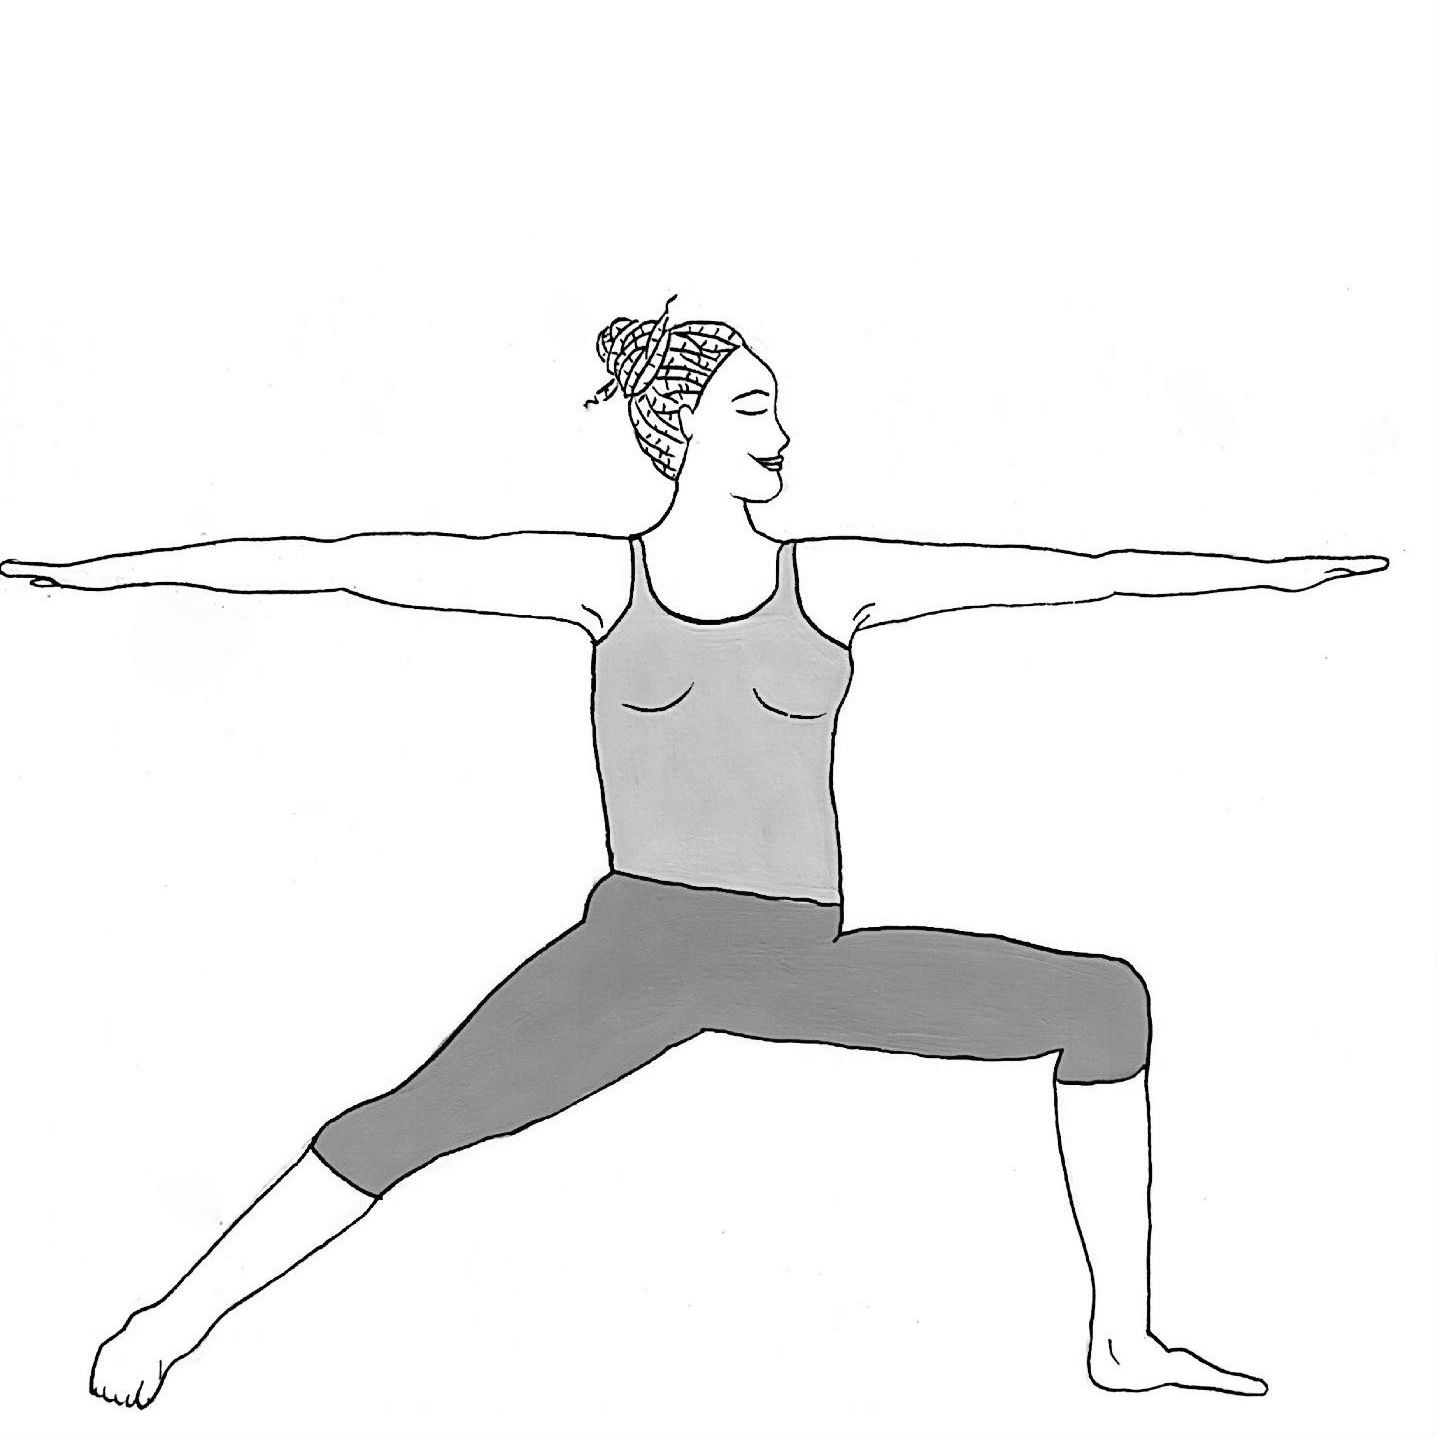 Warrior 2 - Virabhadrasana B